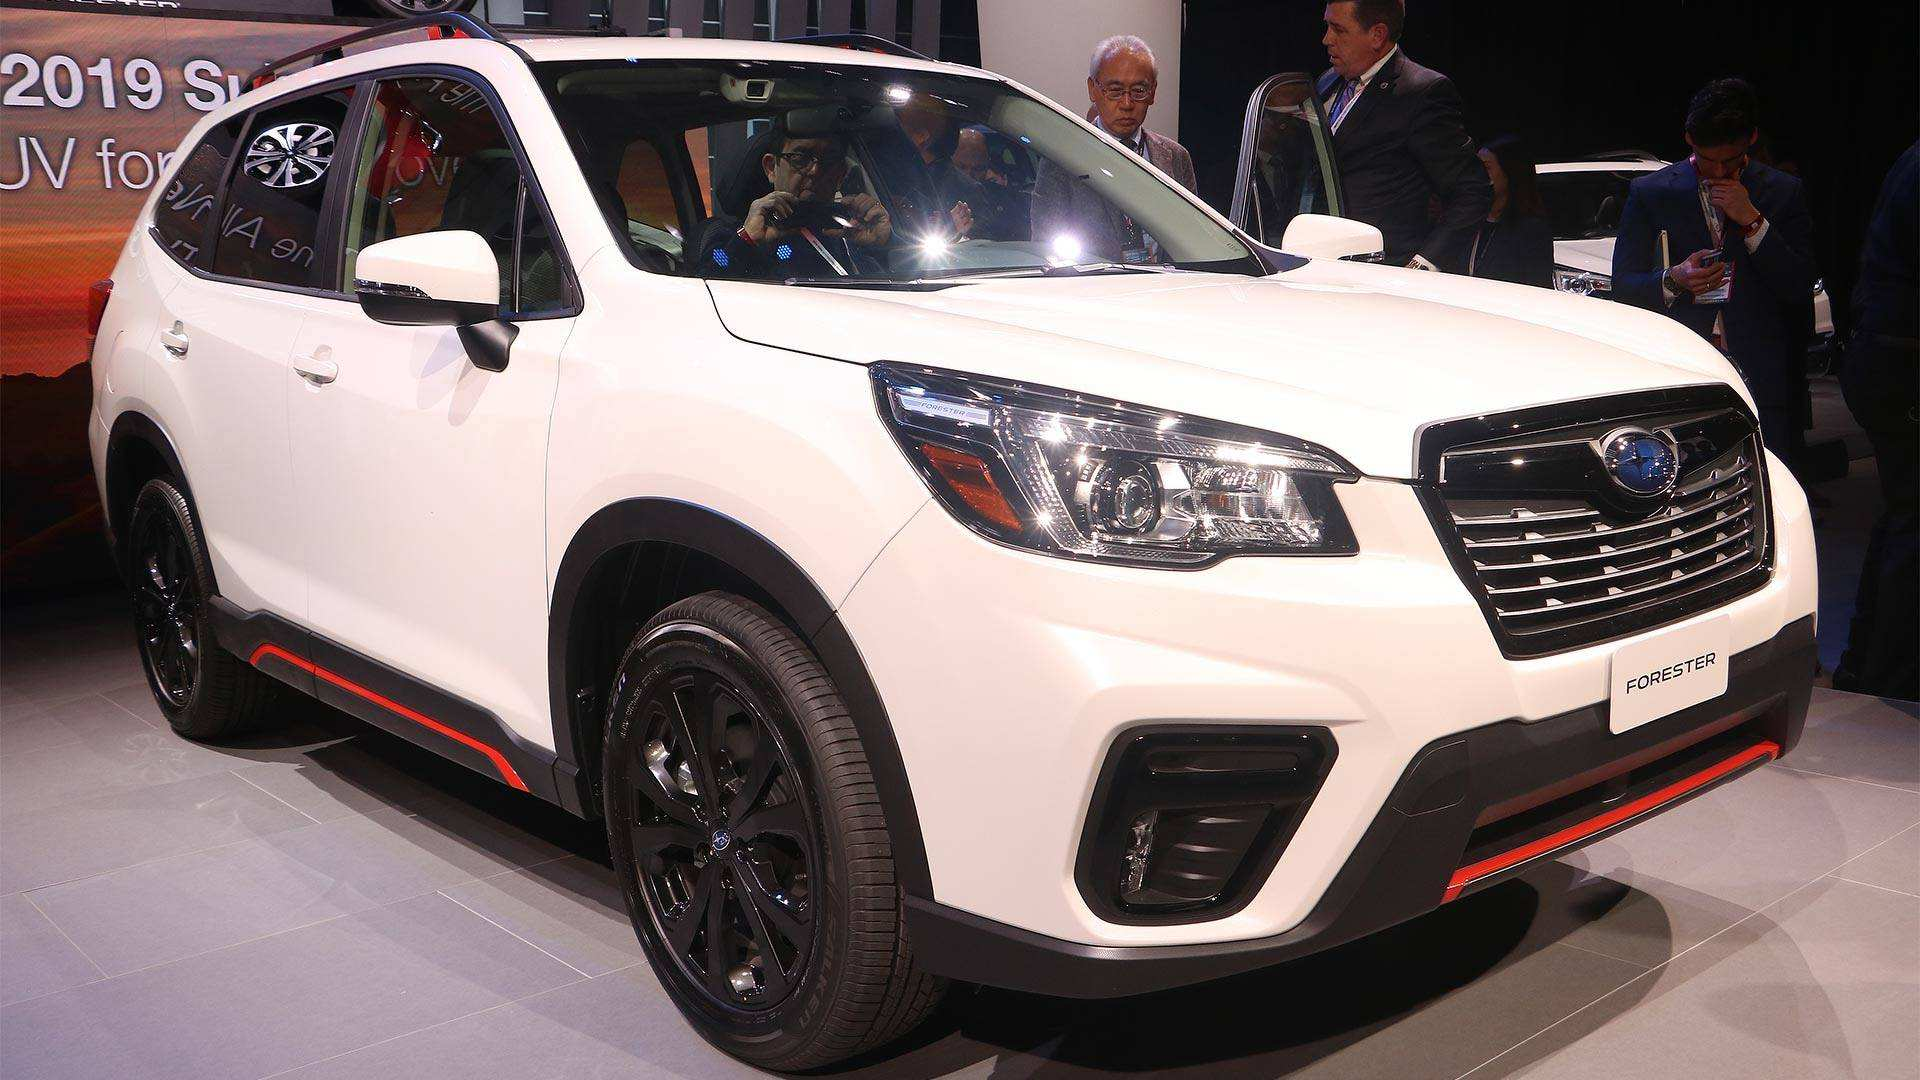 87 New 2019 Subaru Forester Manual Model